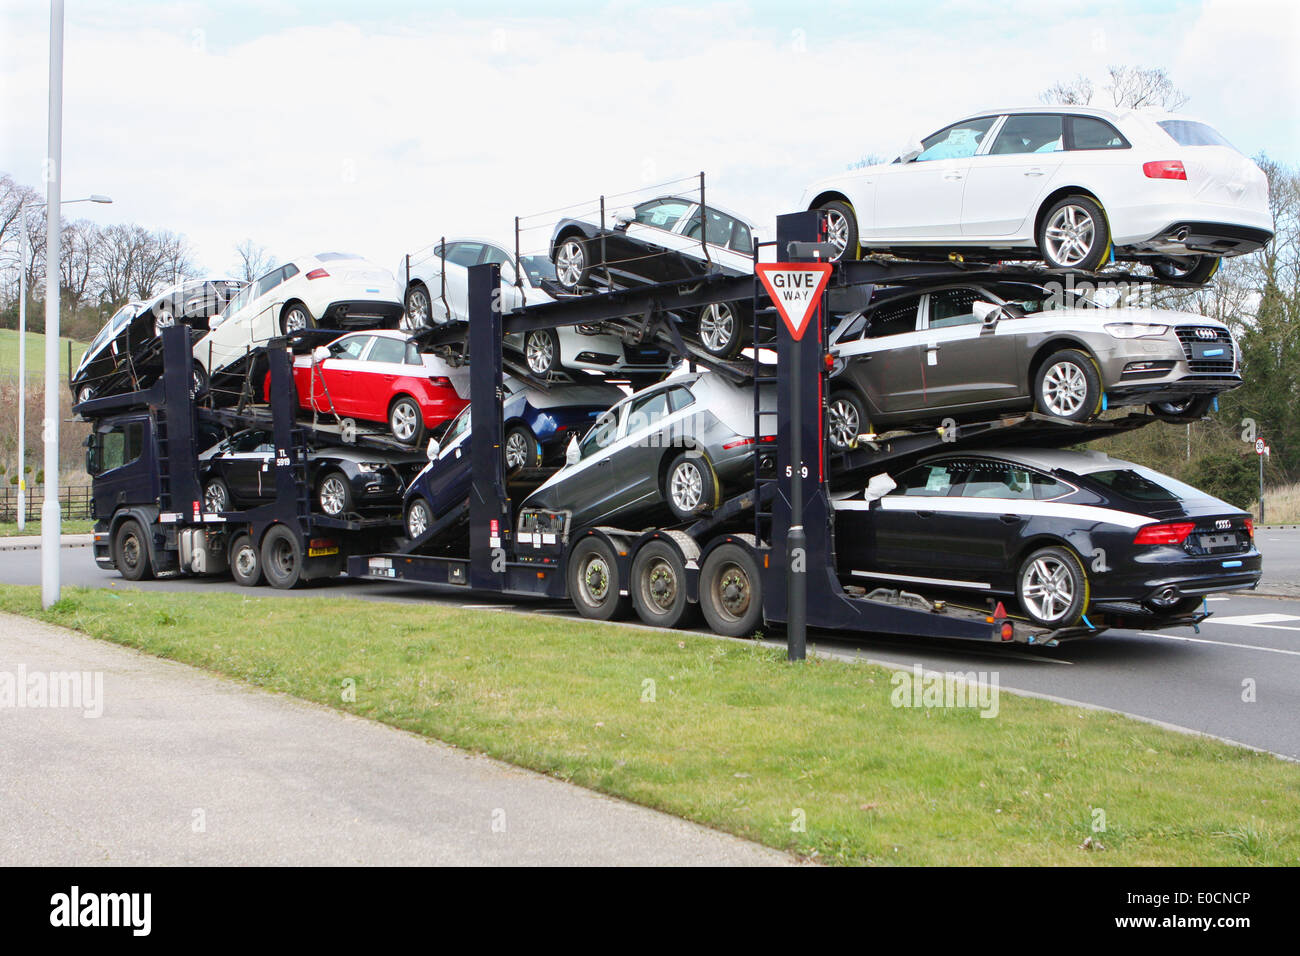 A Car Transporter Carrying A Load Of New Audi Cars And